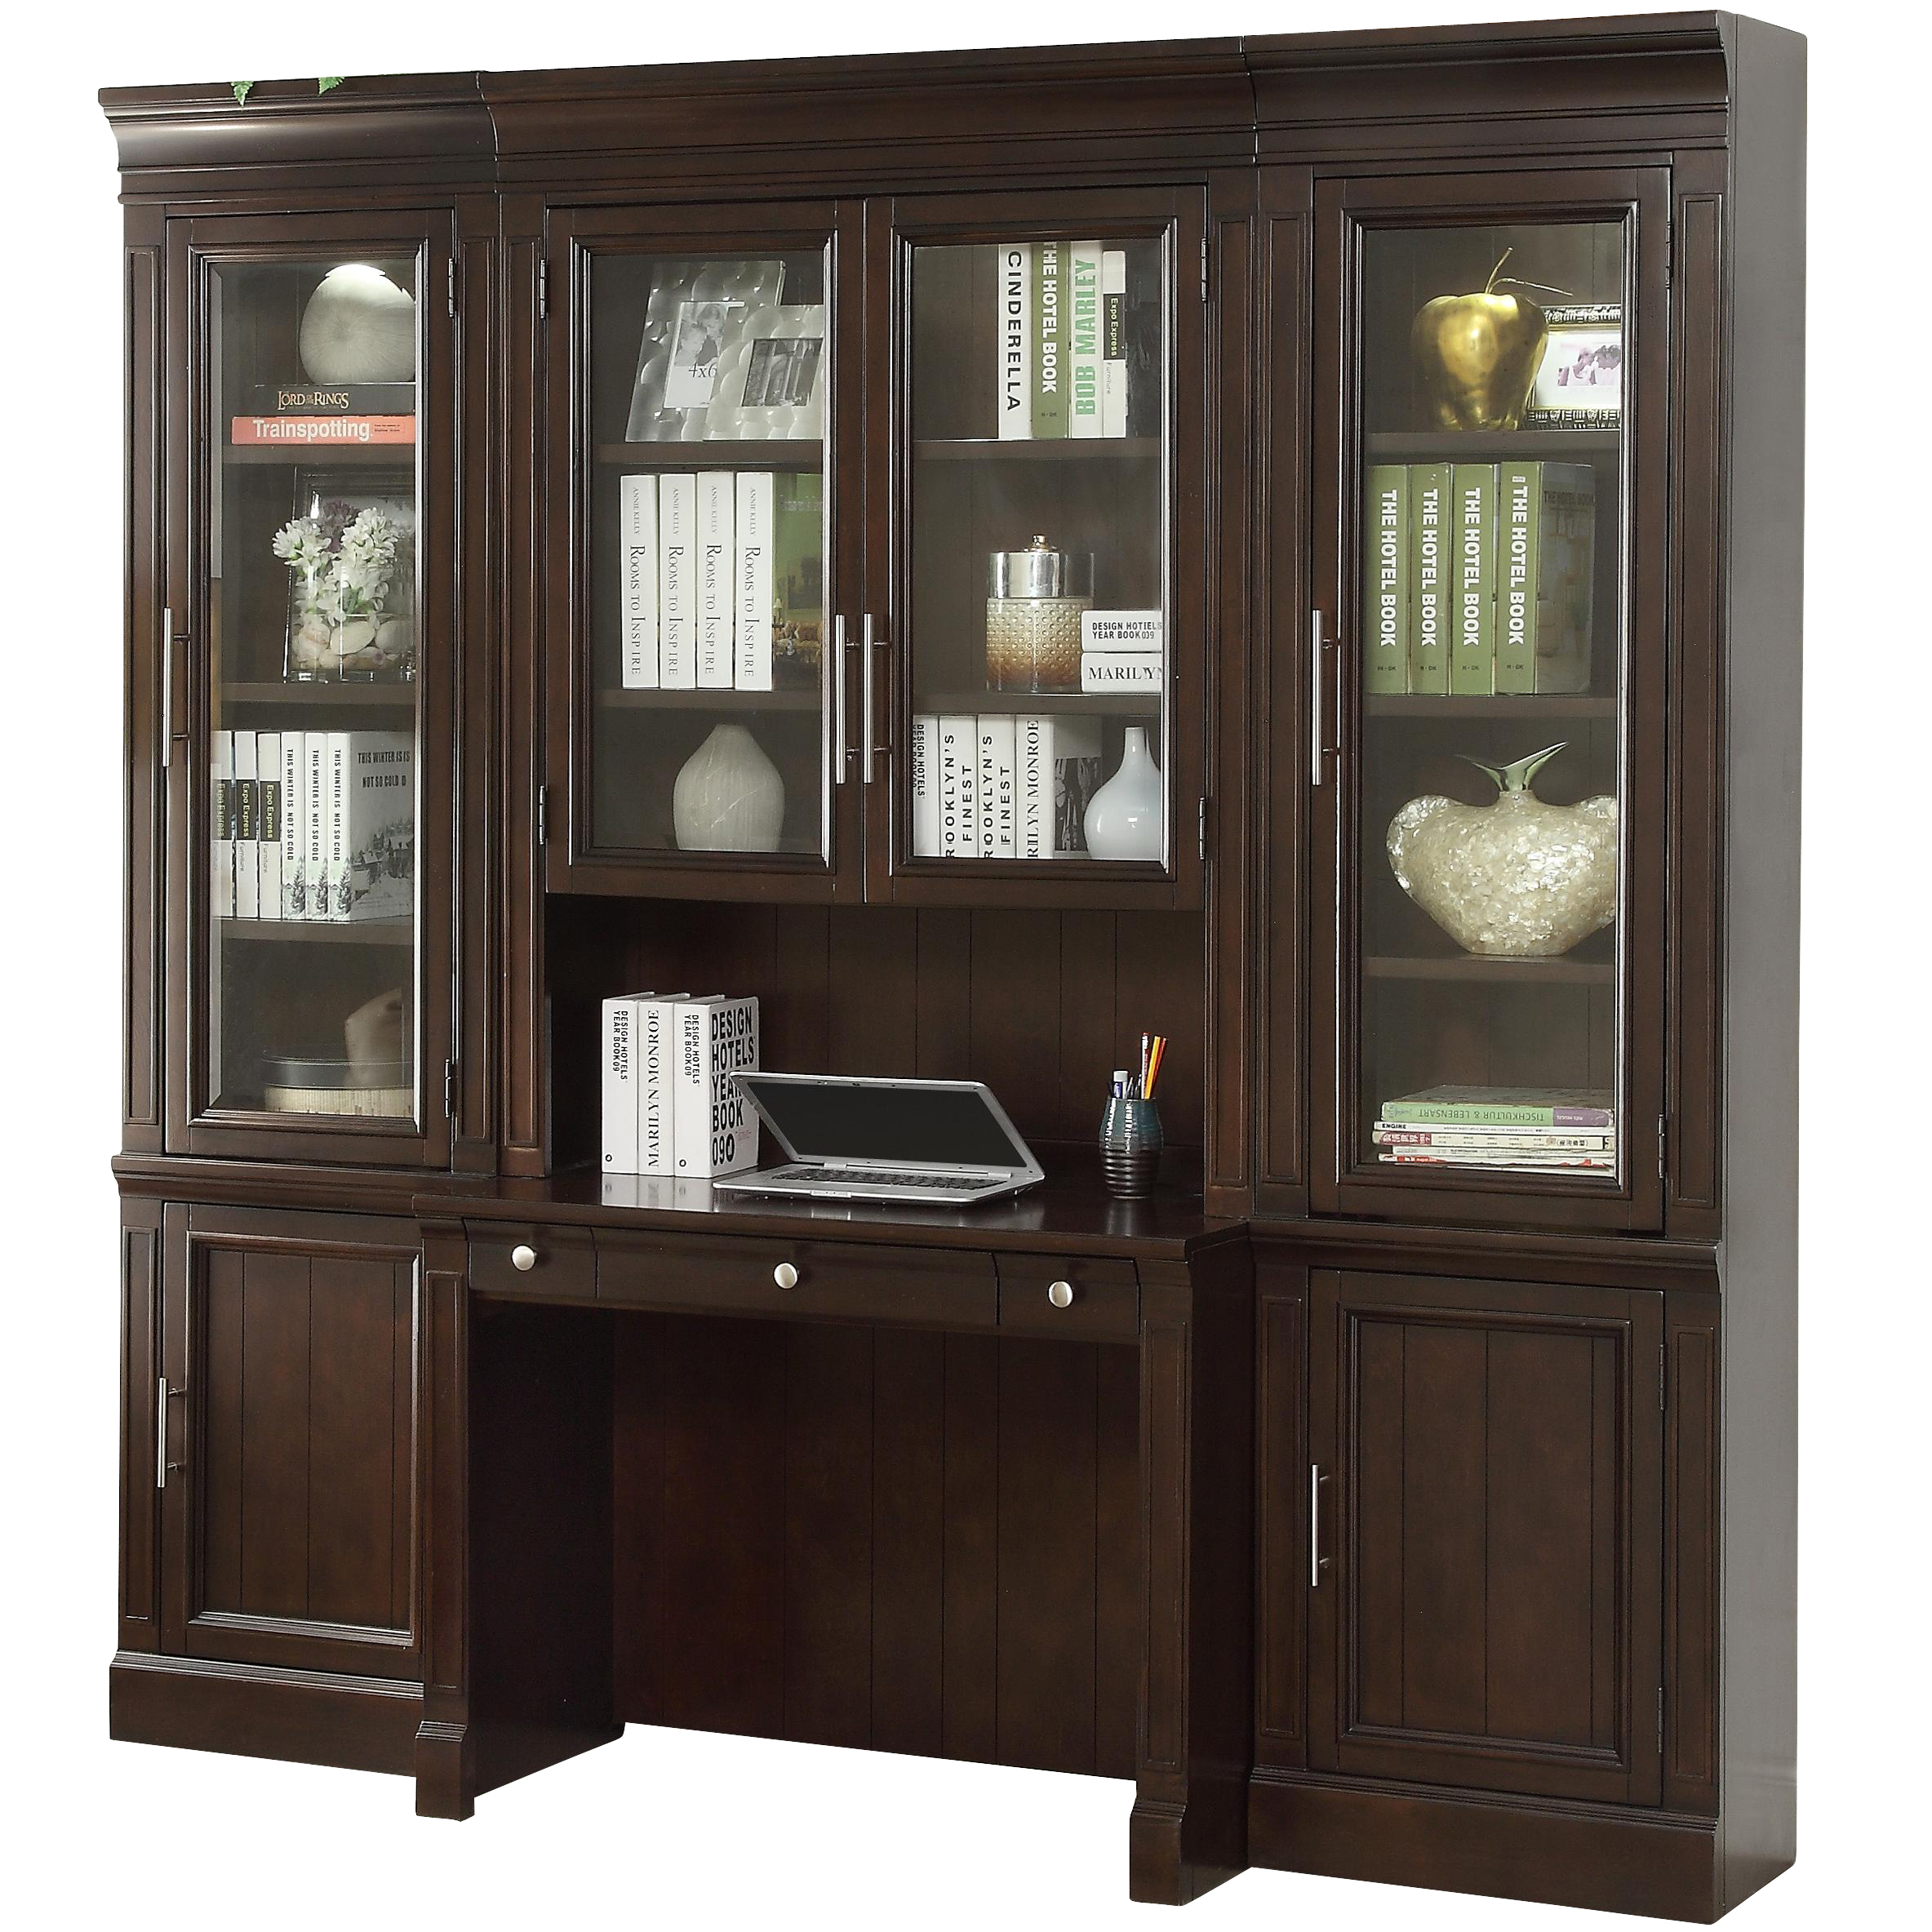 Parker House Stanford Library Wall Unit w Desk